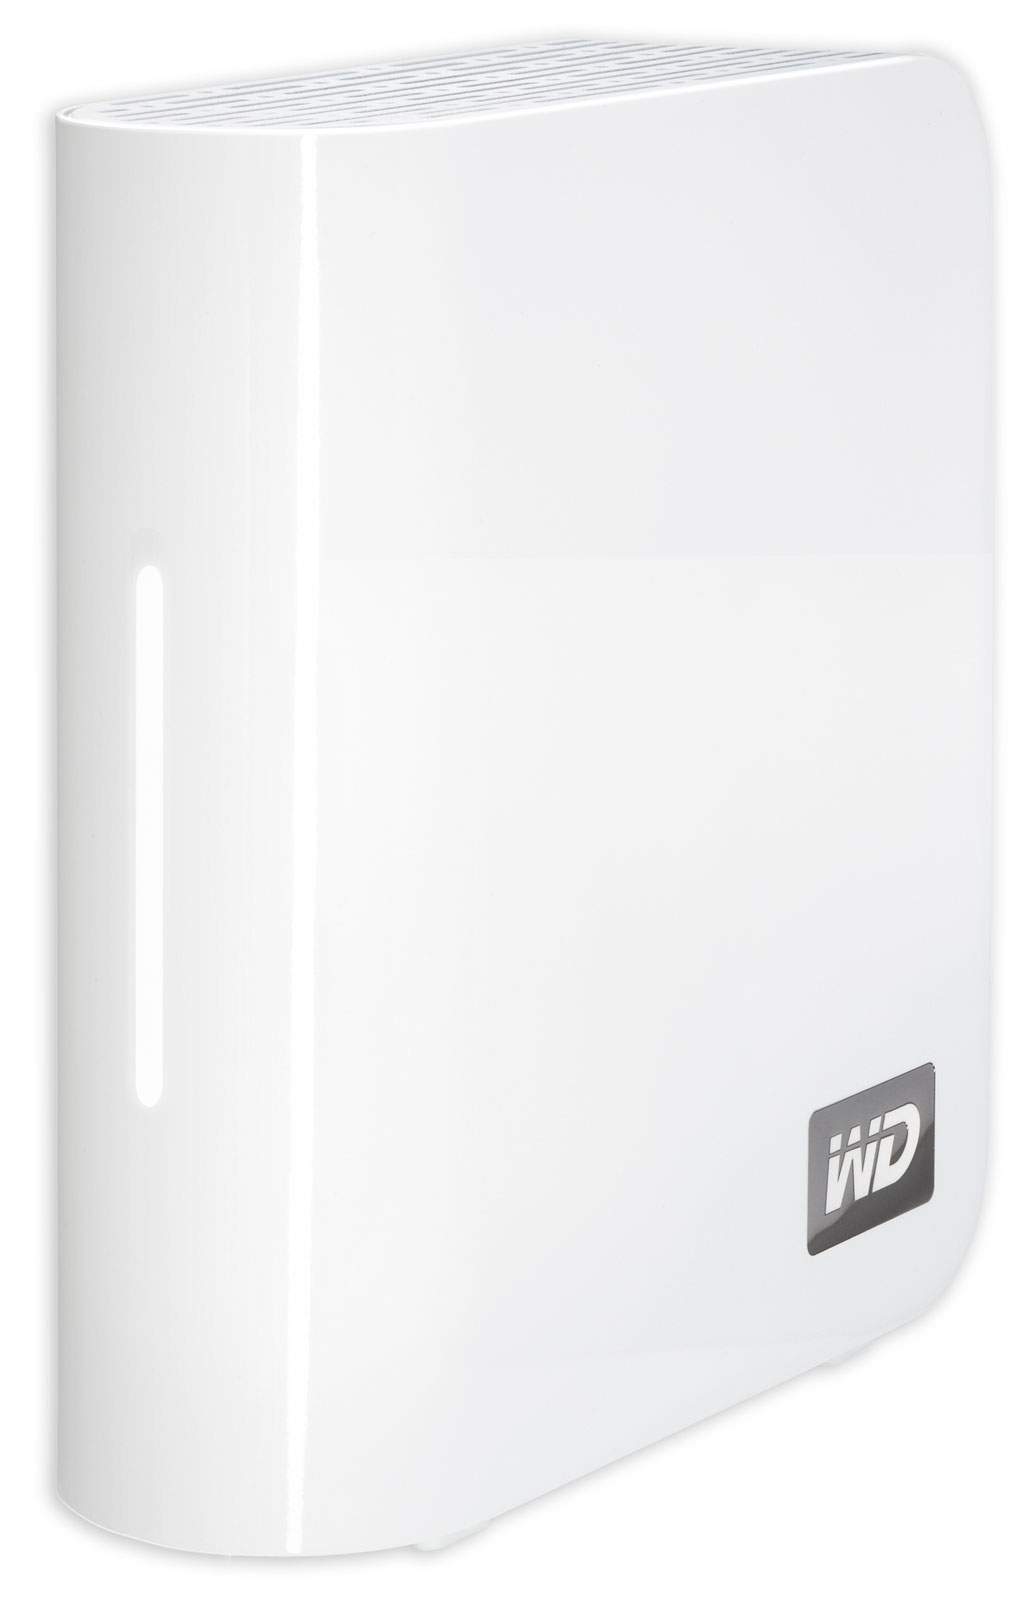 big_wd-my-book-world-edition-2tb-nas_side1.jpg